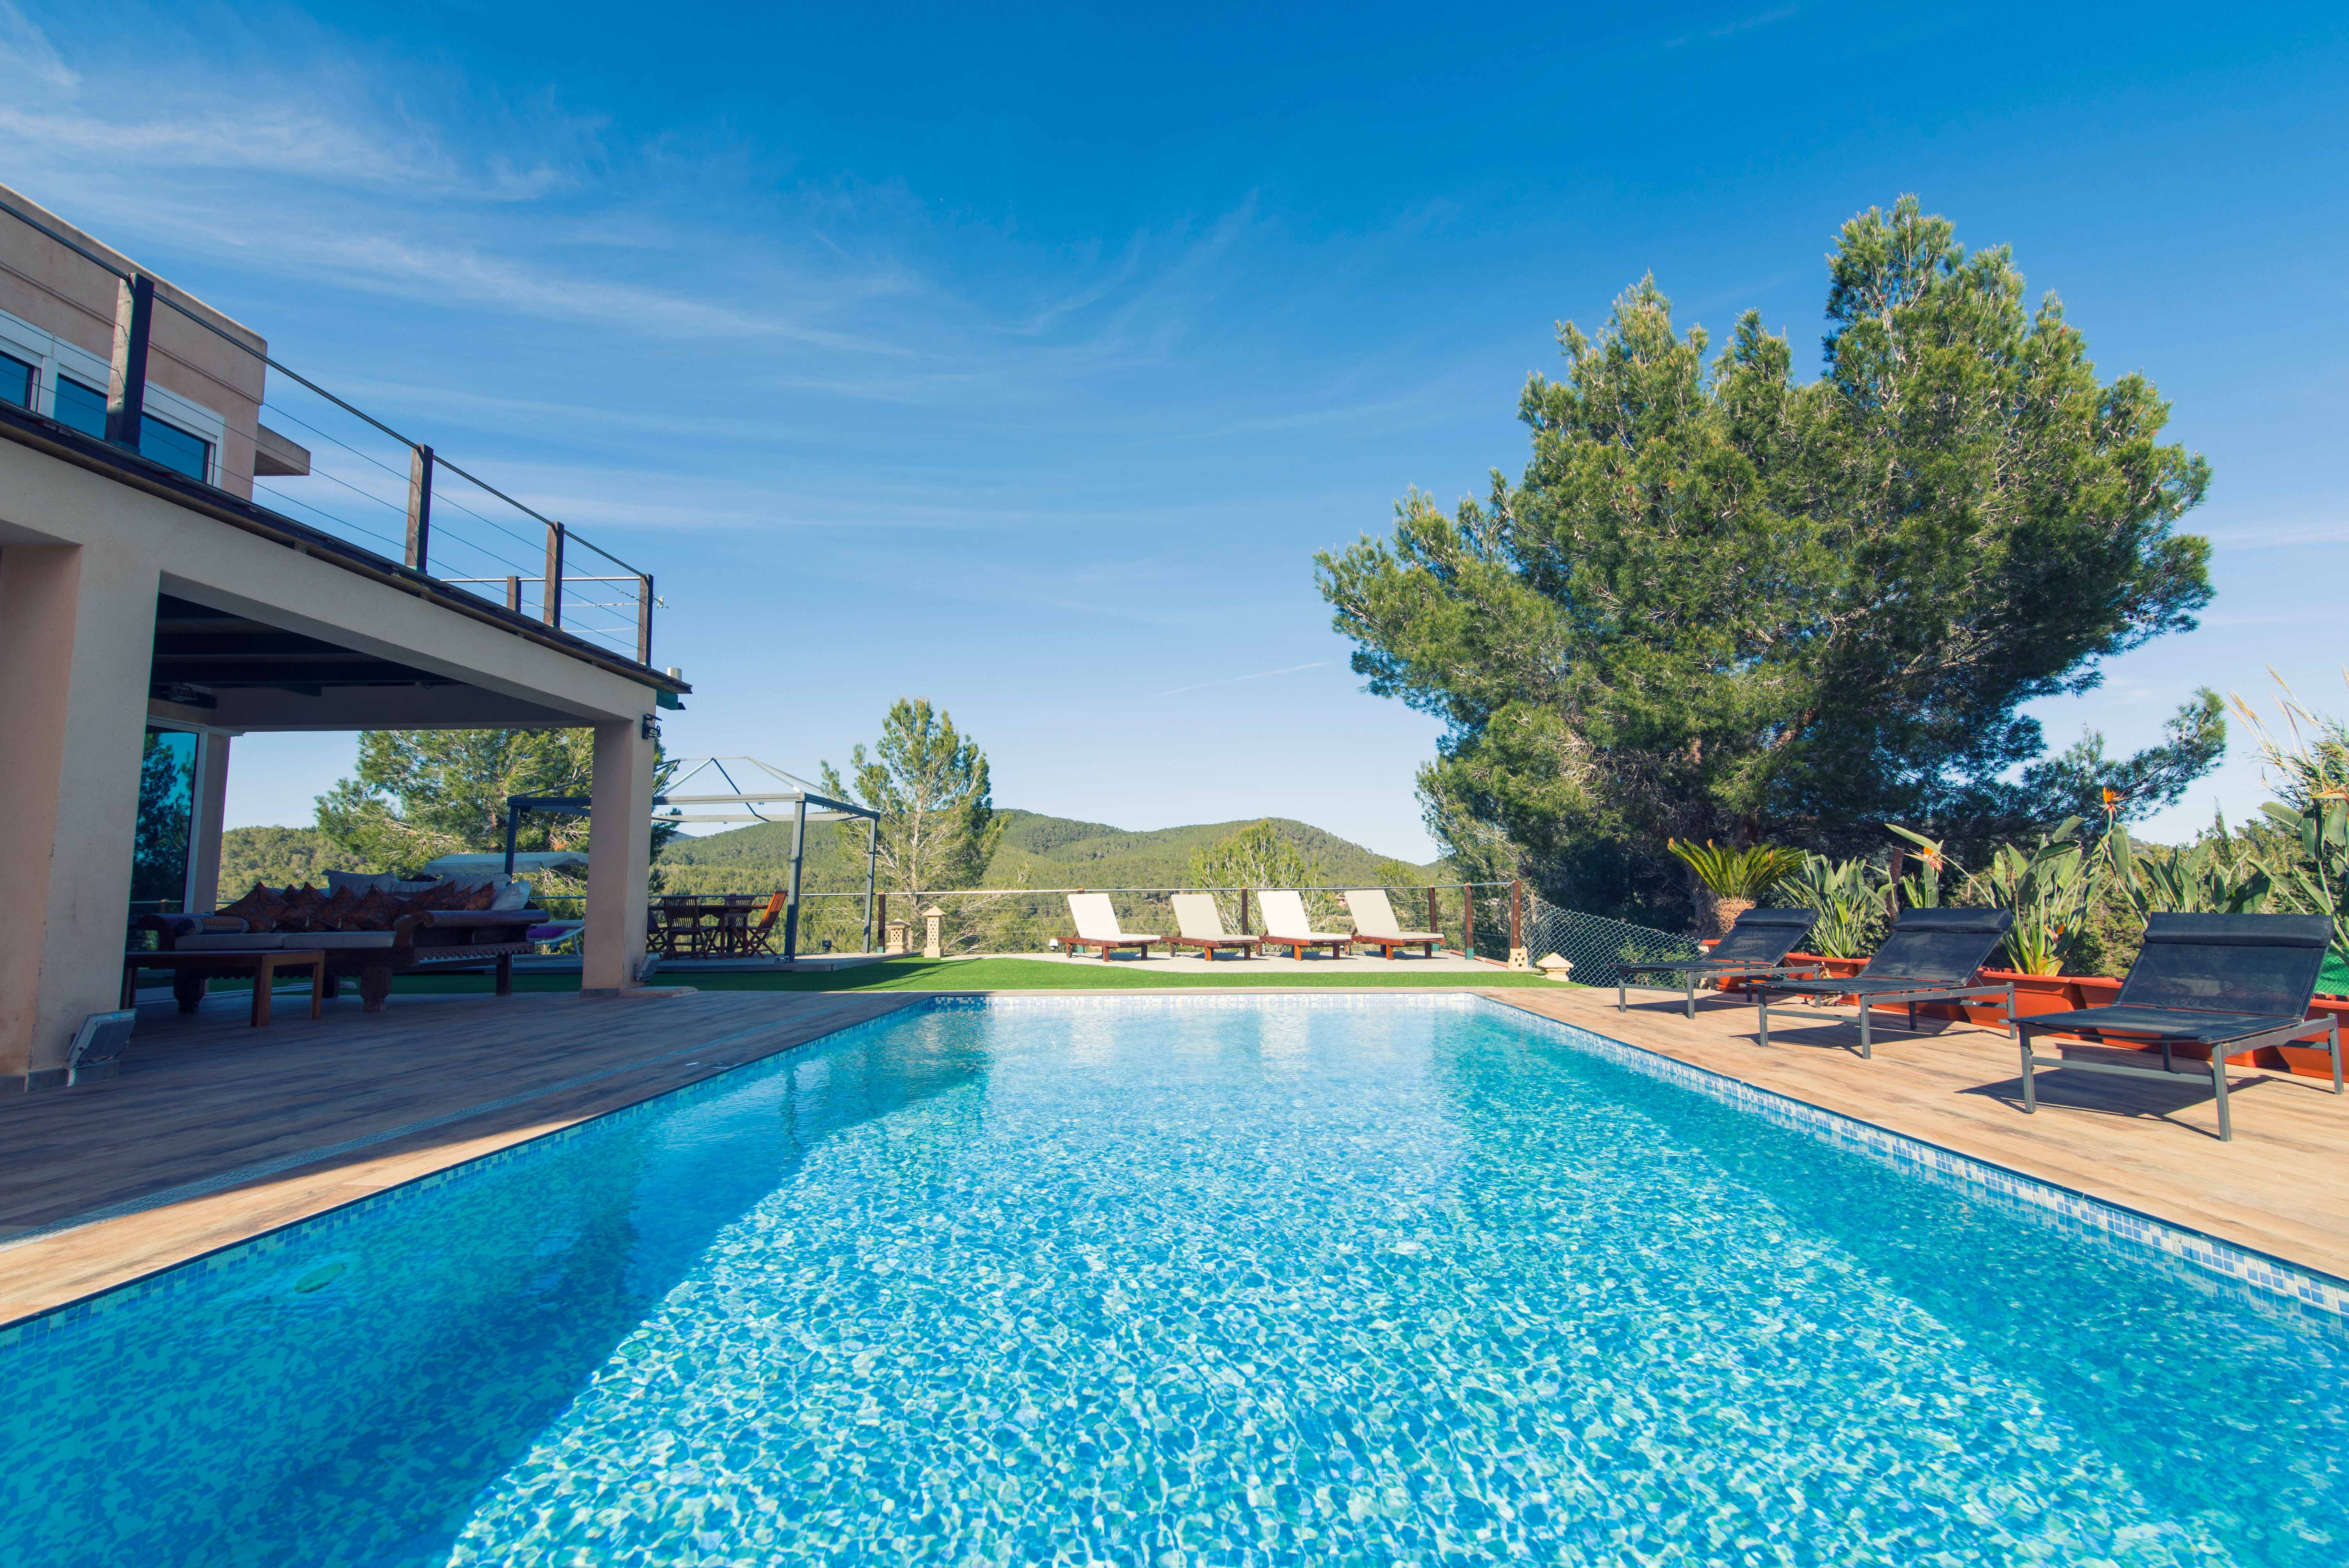 luxury villa rental, Spain, ESPIBI 1814